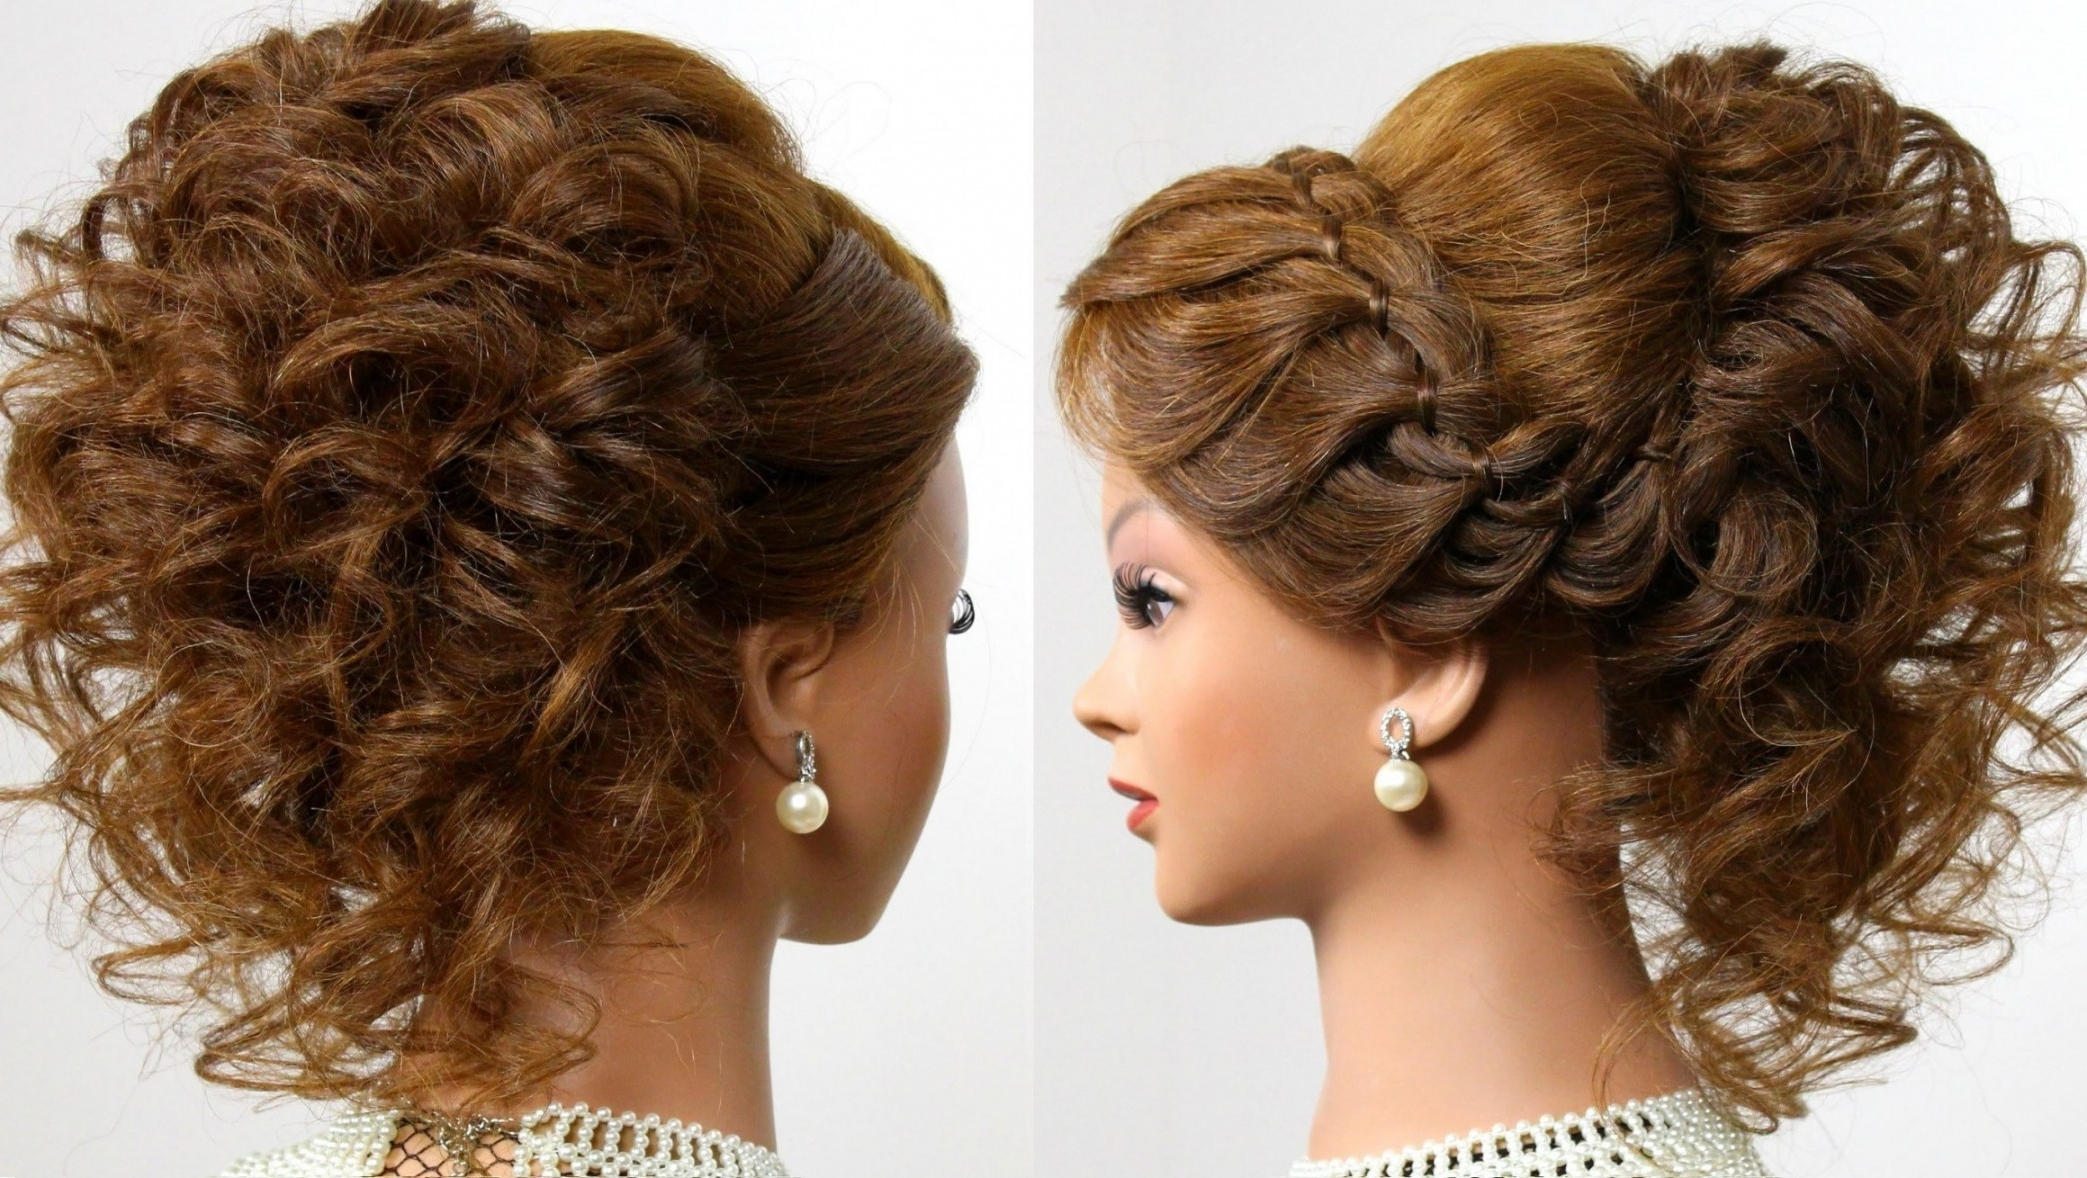 Hairstyles: Wedding Hairstyles Updos | Curly Hair Updos | Updo In Hair Updos For Curly Hair (View 6 of 15)